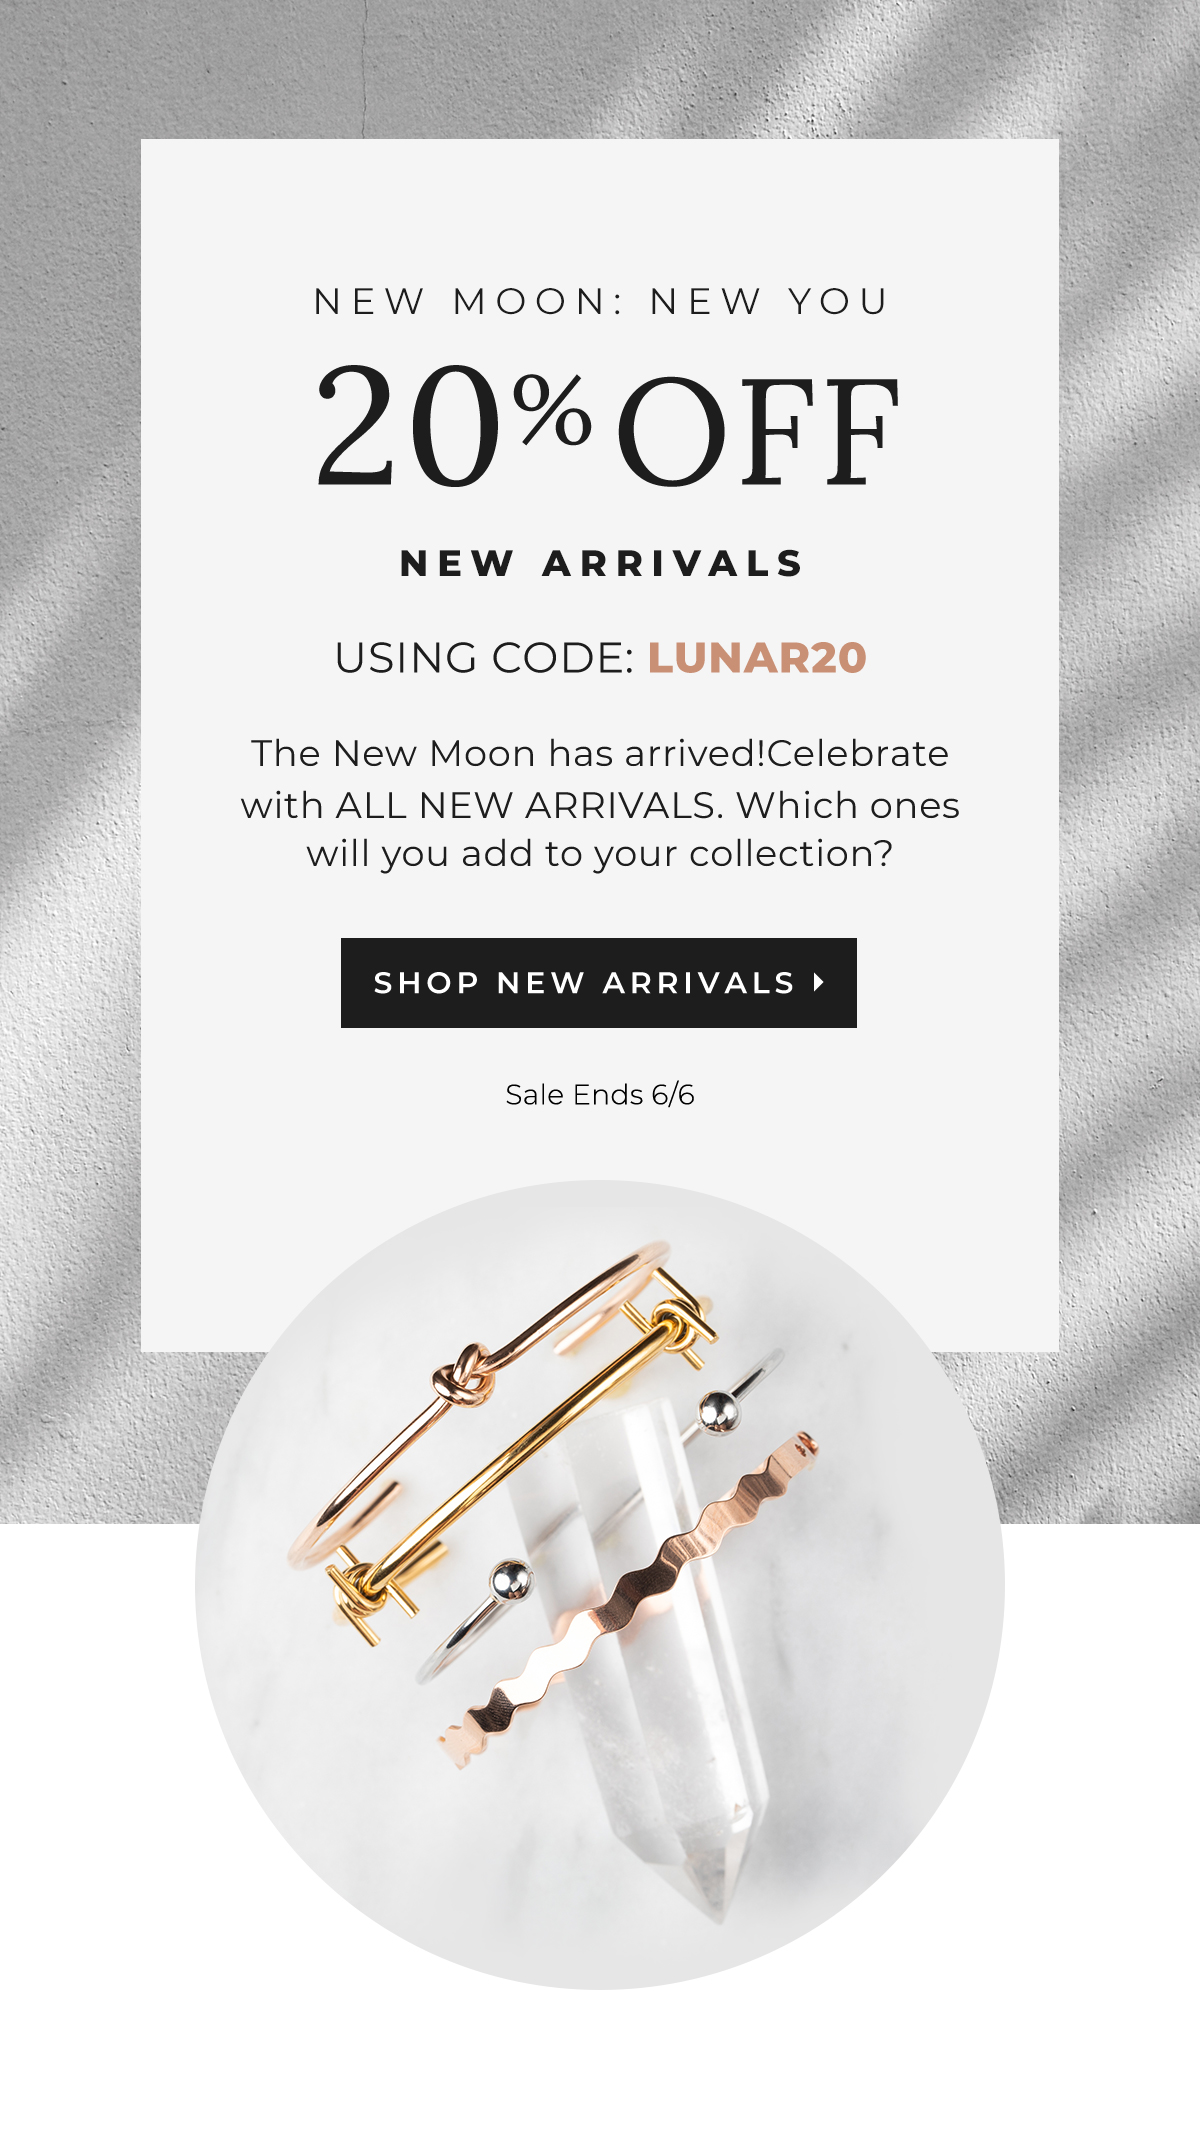 New Moon: New You - 20% Off NEW ARRIVALS using code: LUNAR20. The New Moon has arrived! Celebrate with ALL NEW ARRIVALS. Which ones will you add to your collection? | SHOP NEW ARRIVALS - Sale Ends 6/6